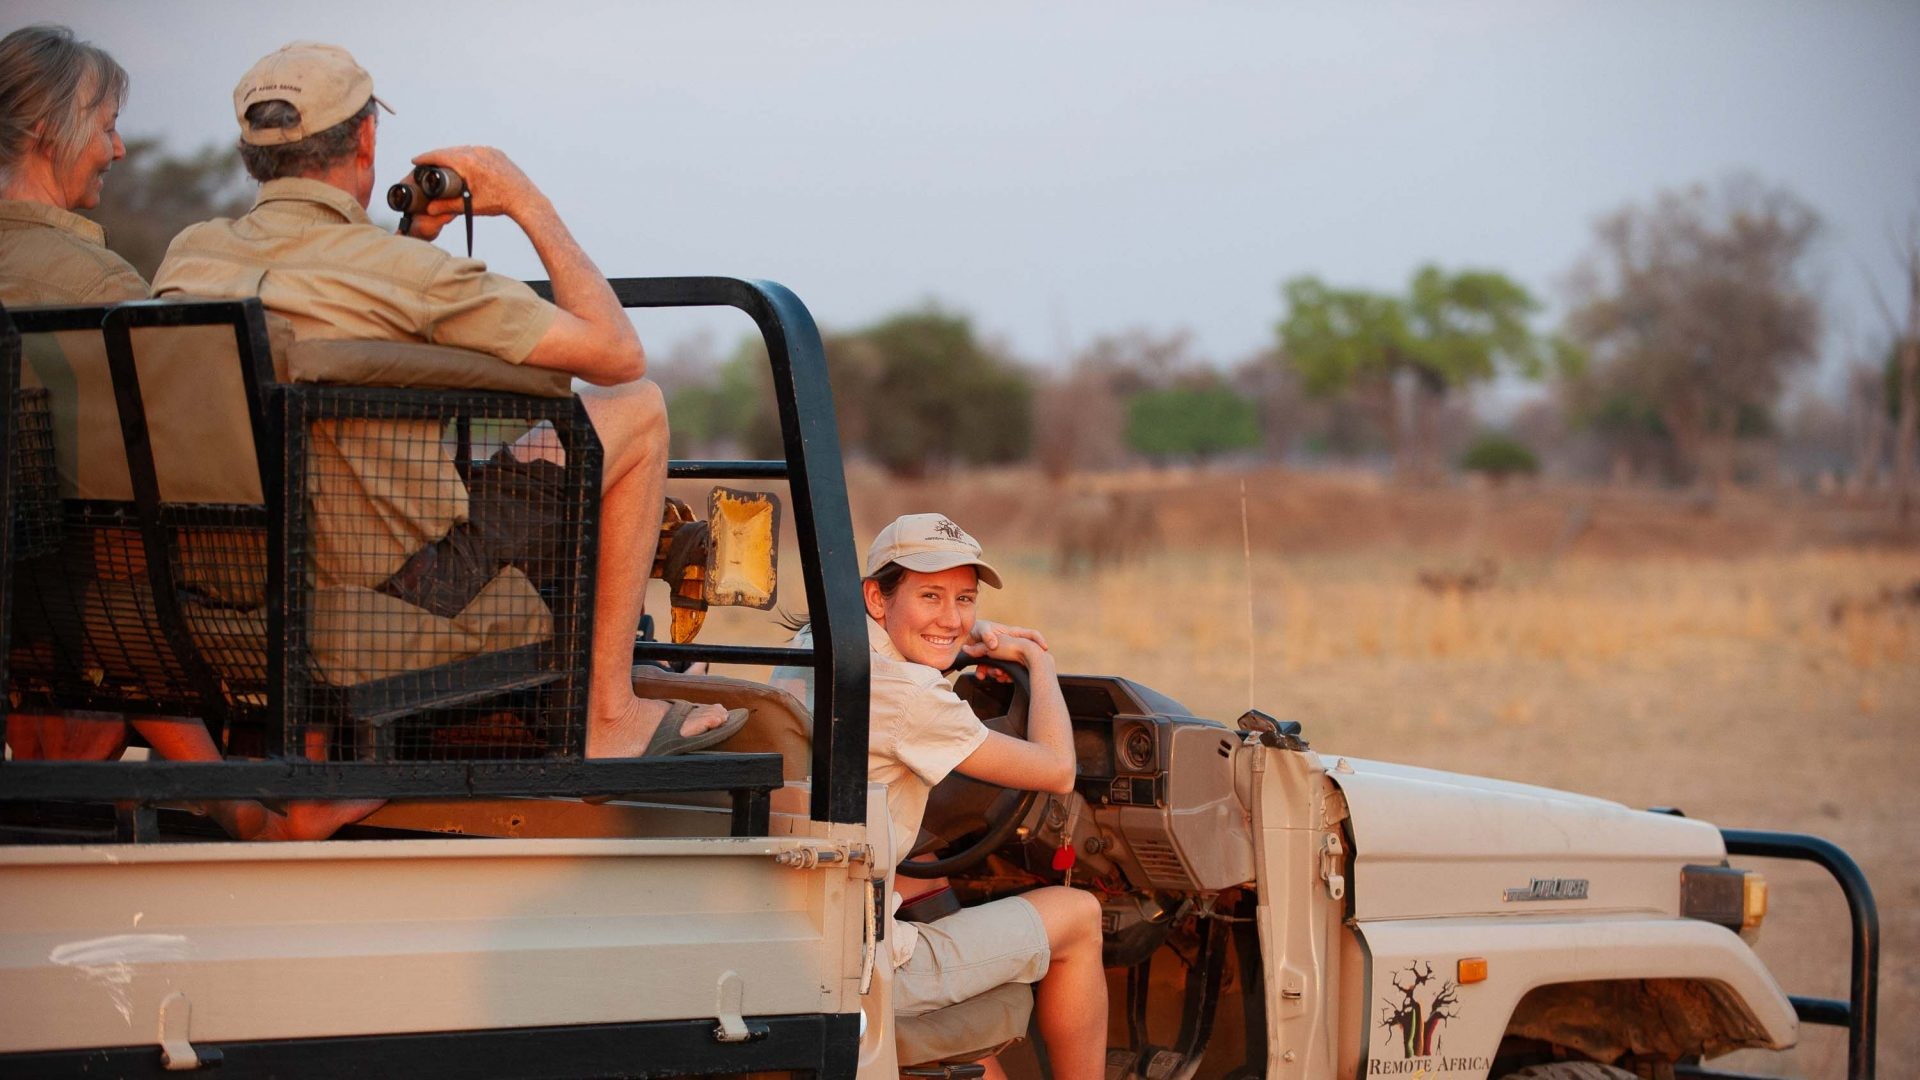 29-year-old guide Jen Coppinger takes tourists out on the jeep.